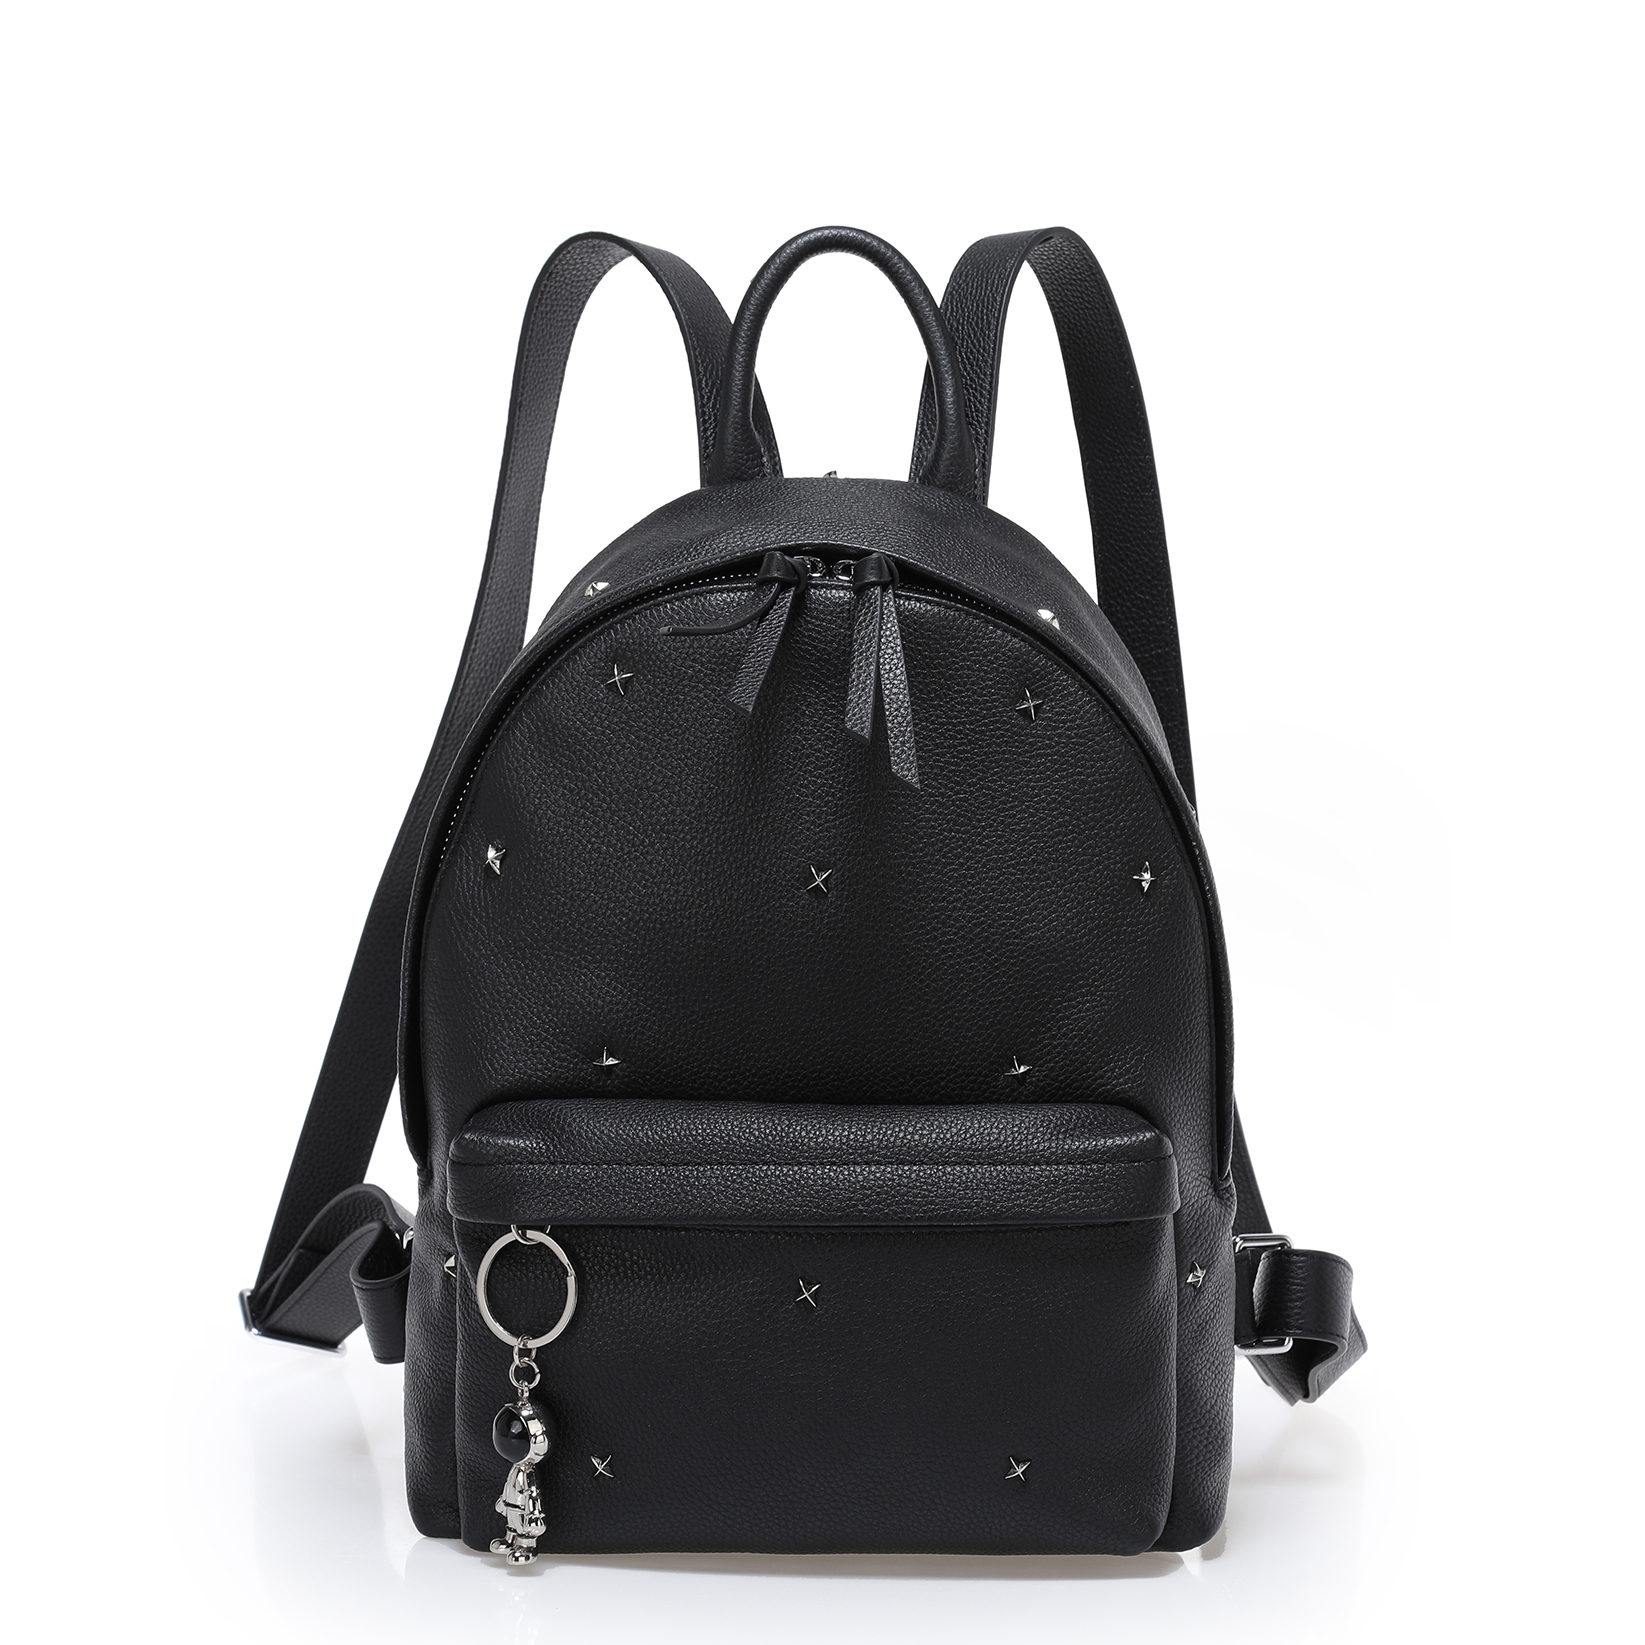 Popular Leather Black Backpack Bags For Womens On Sale - Buy Outdoor ... e15b3dac01